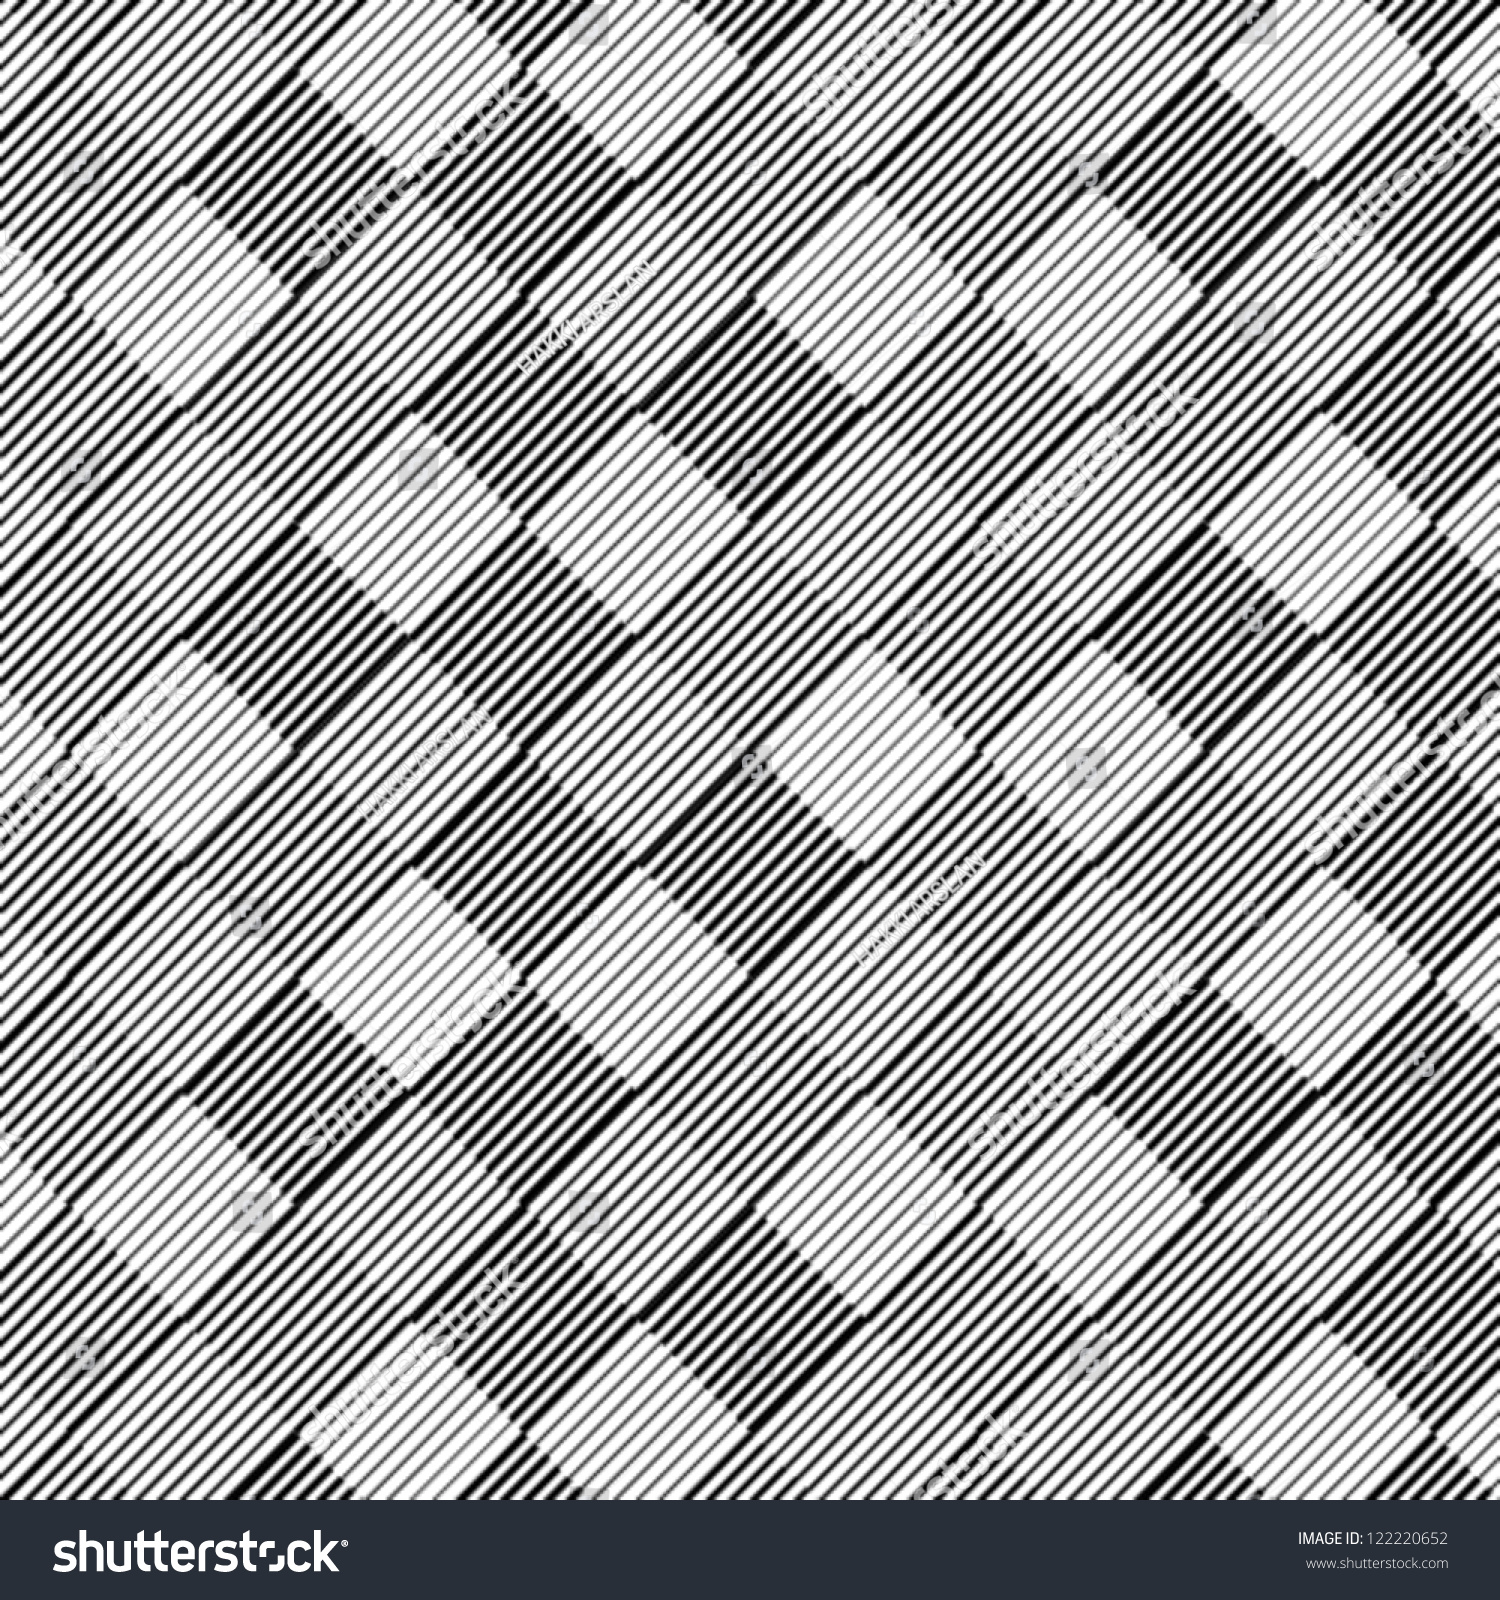 Line And Texture In Art : Line art geometric pattern texture background stock